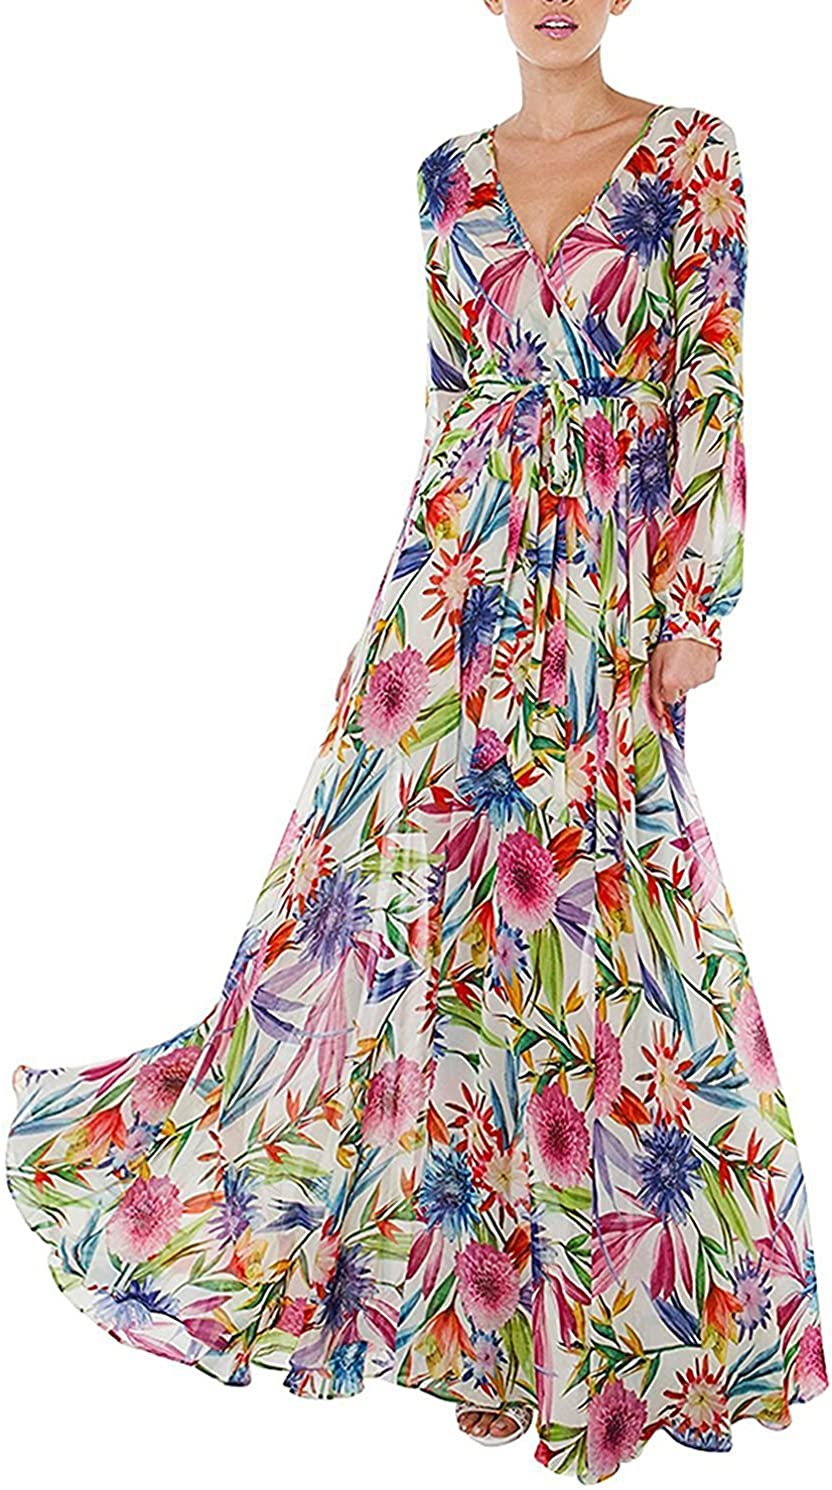 Asmax Haoduoyi Women S Tropical Floral Print Pleated Tunic V Neck Wedding Maxi Dress At Amazon Women S Clothing Store,Dresses To Go To A Wedding